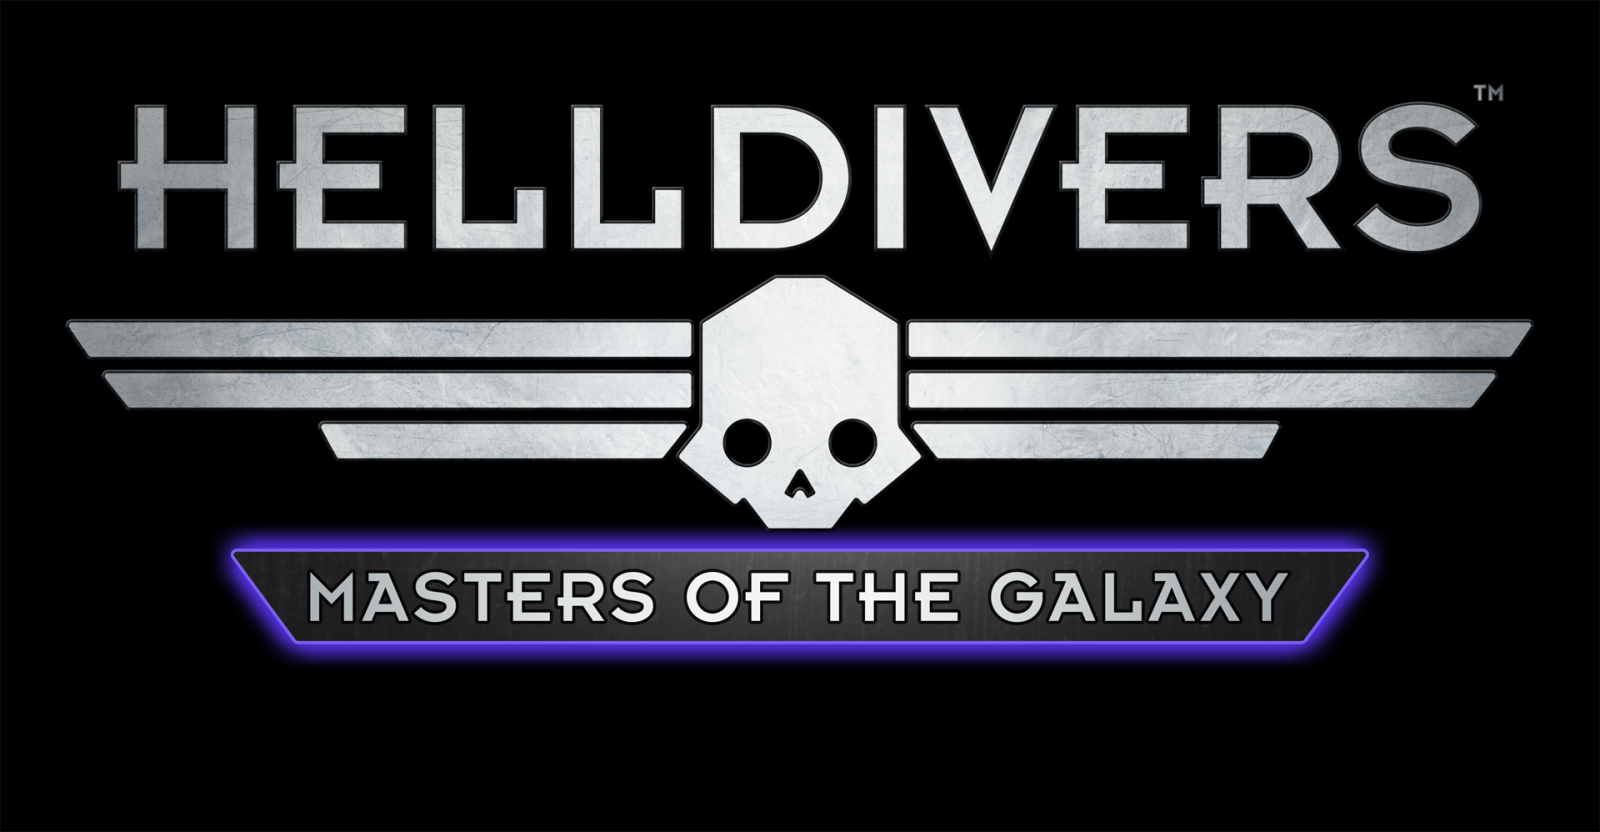 Helldivers Masters of the Galaxy